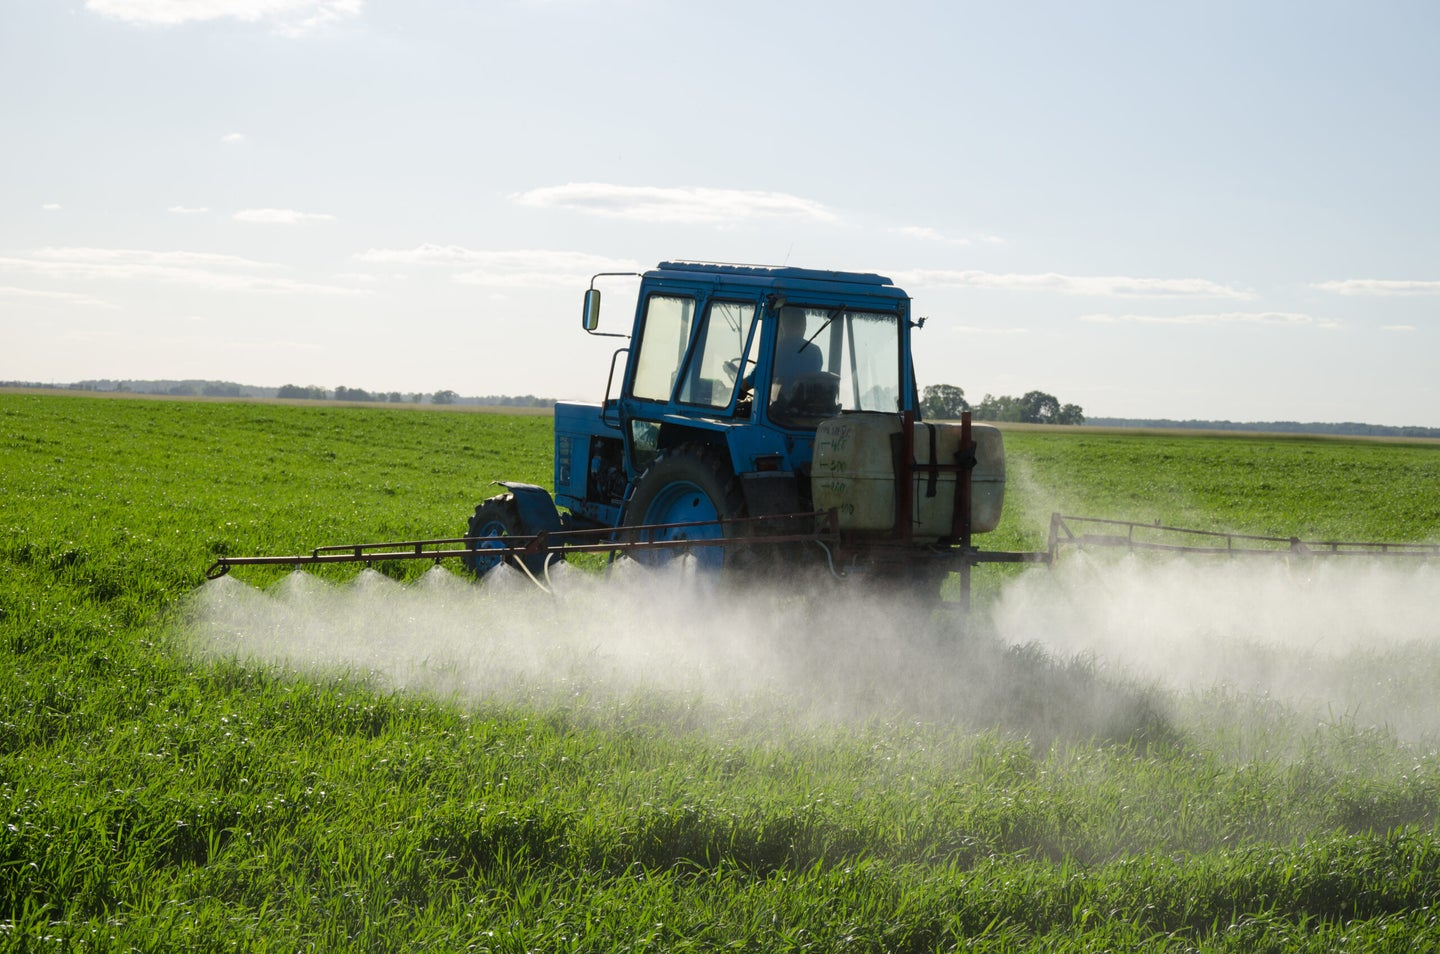 tractor spraying insecticide over field